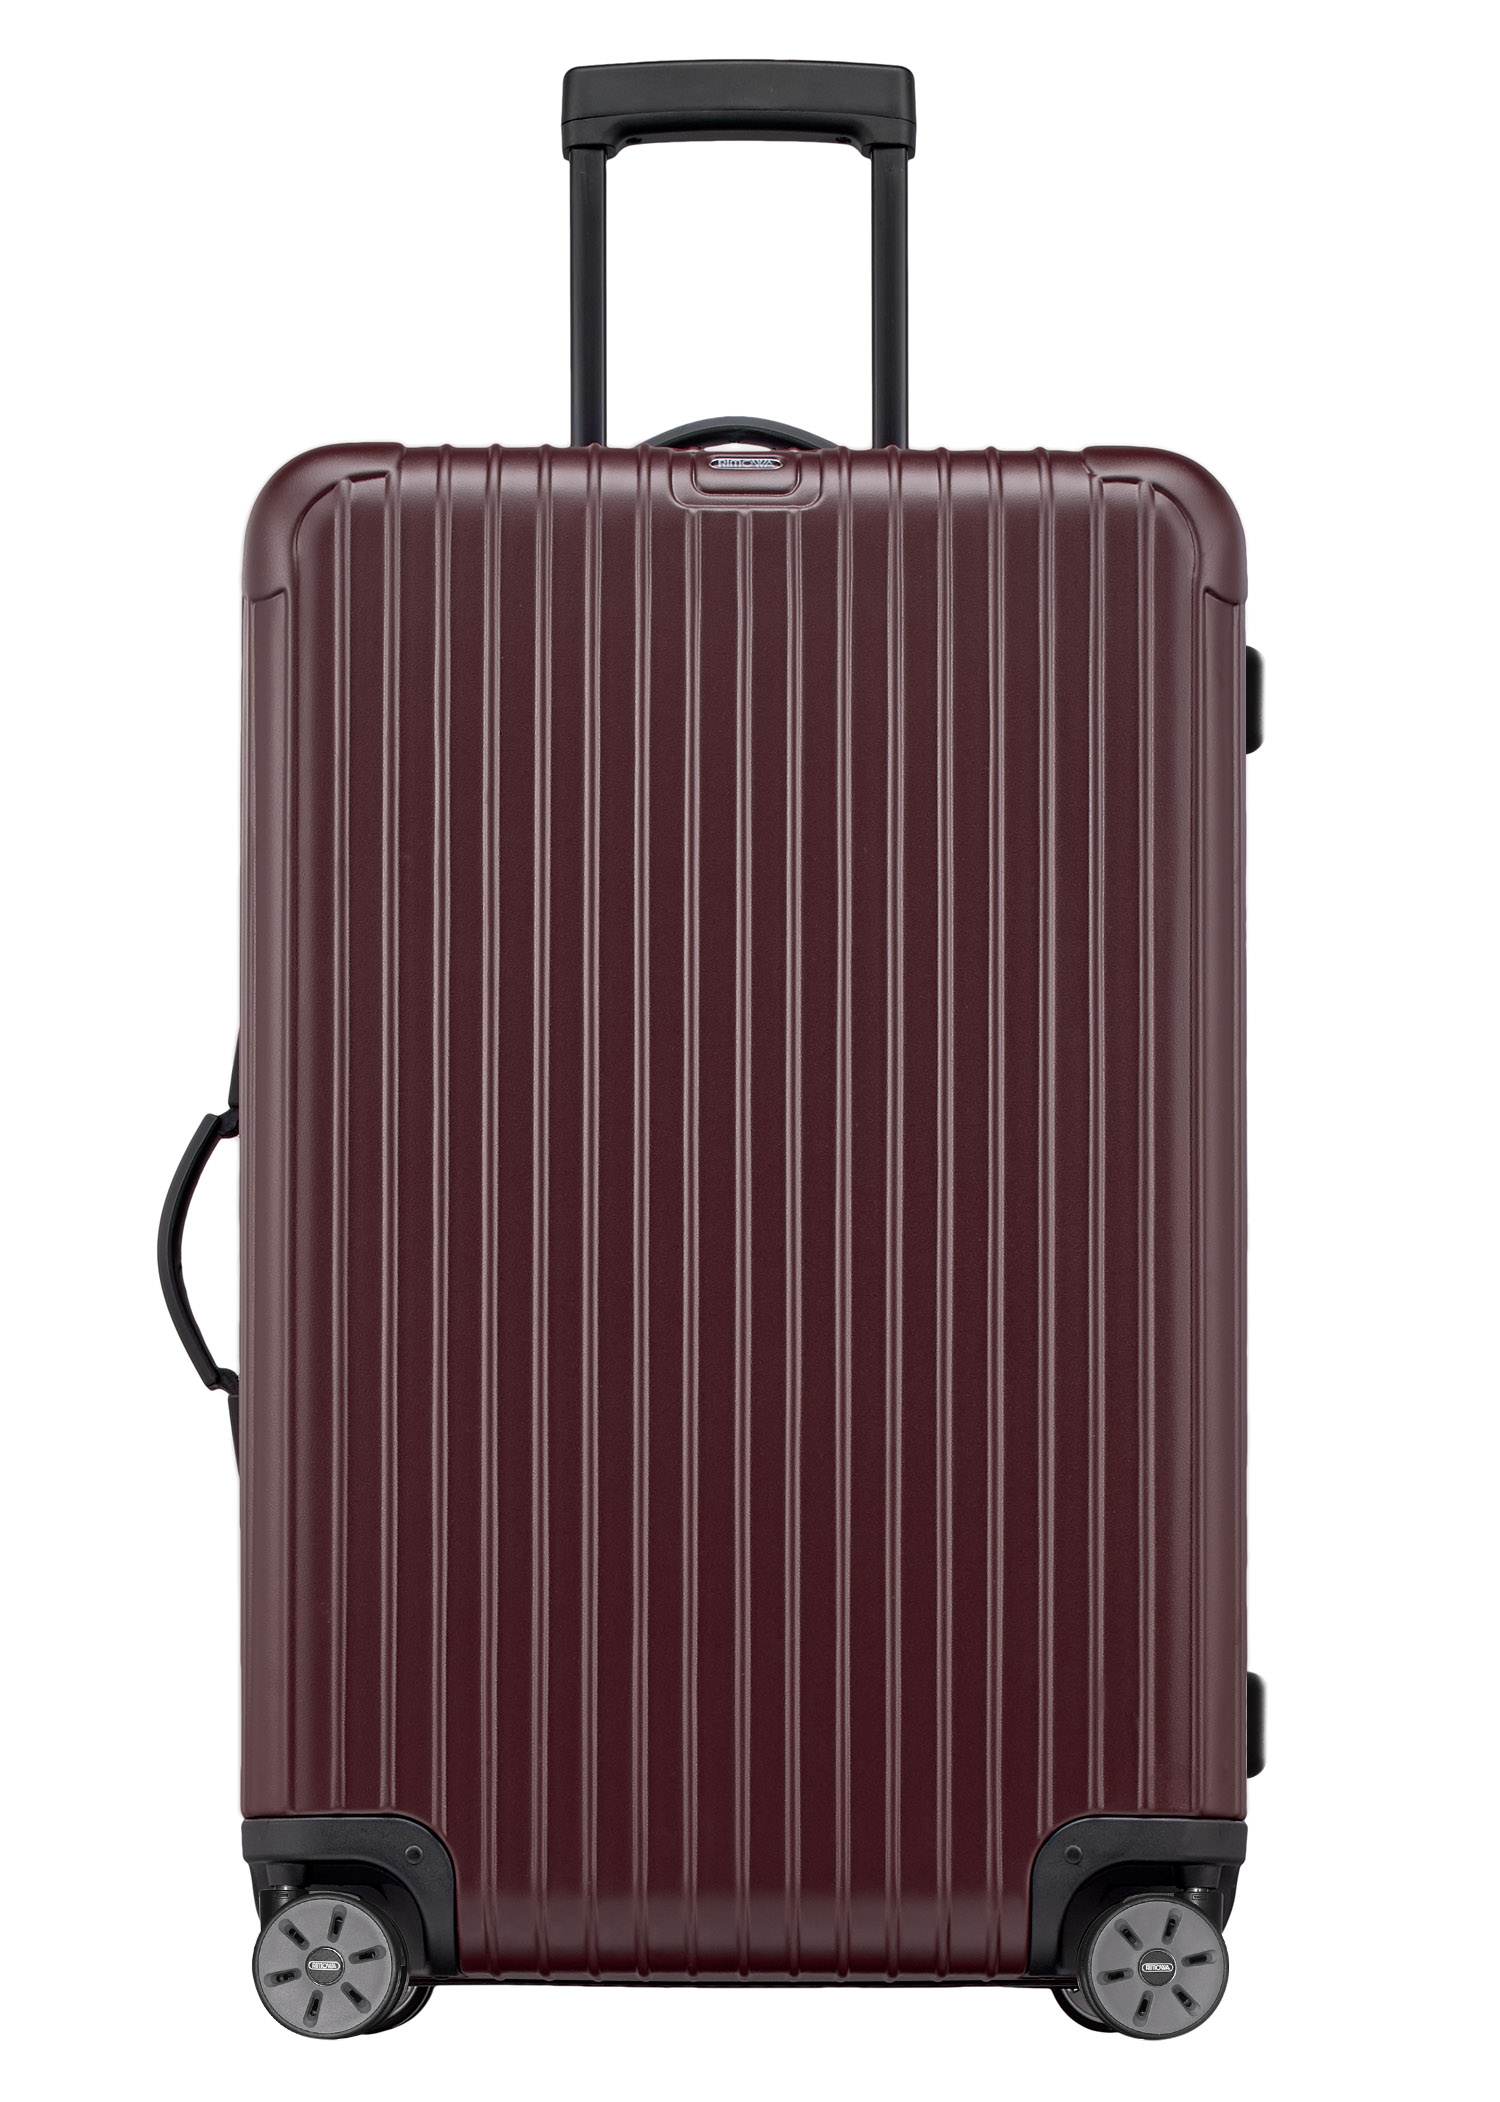 Rimowa Salsa Hard Shell Suitcase 70cm 81070144 Byo Clutch In Matte Burgundy